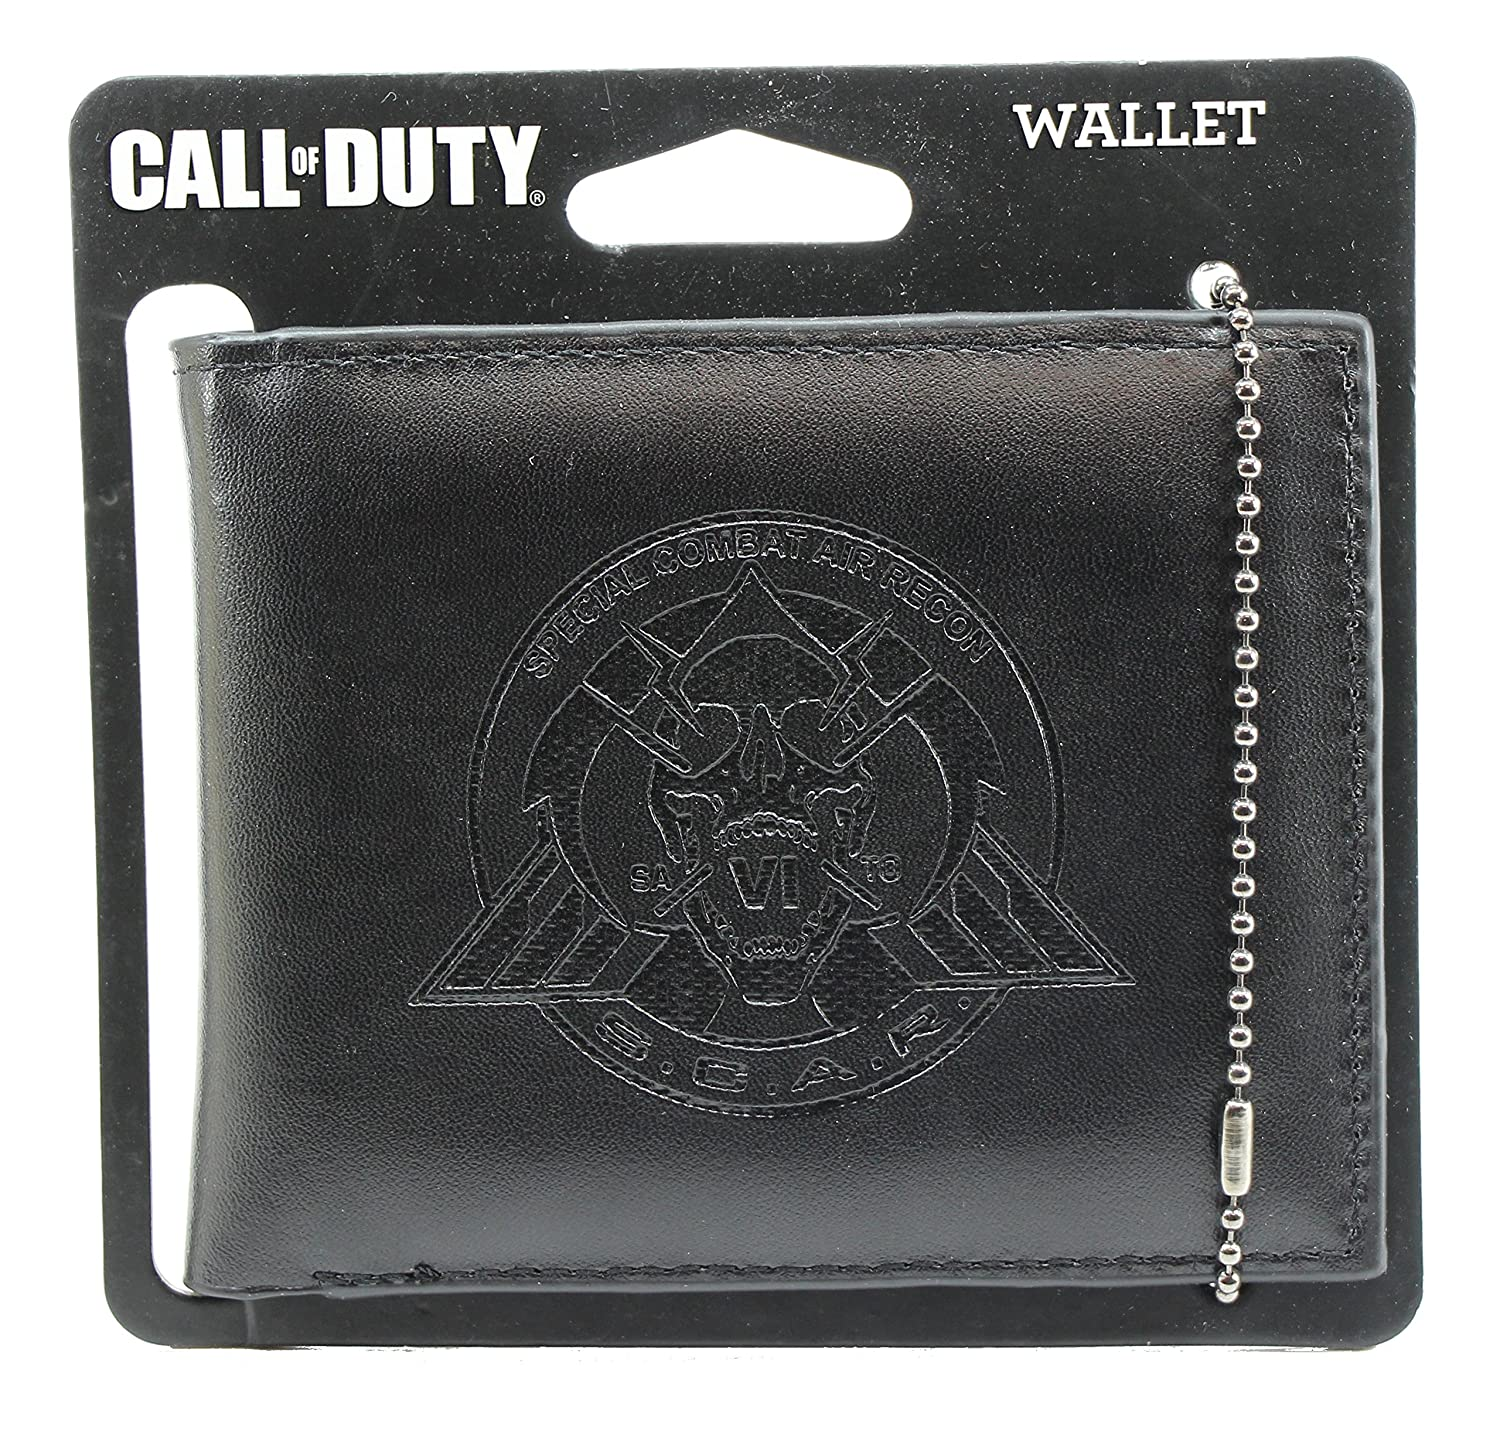 Official Call of Duty Scar Special Combat Air Recon Logo Design Black Bi-Fold Wallet Imagine8 UK Limited